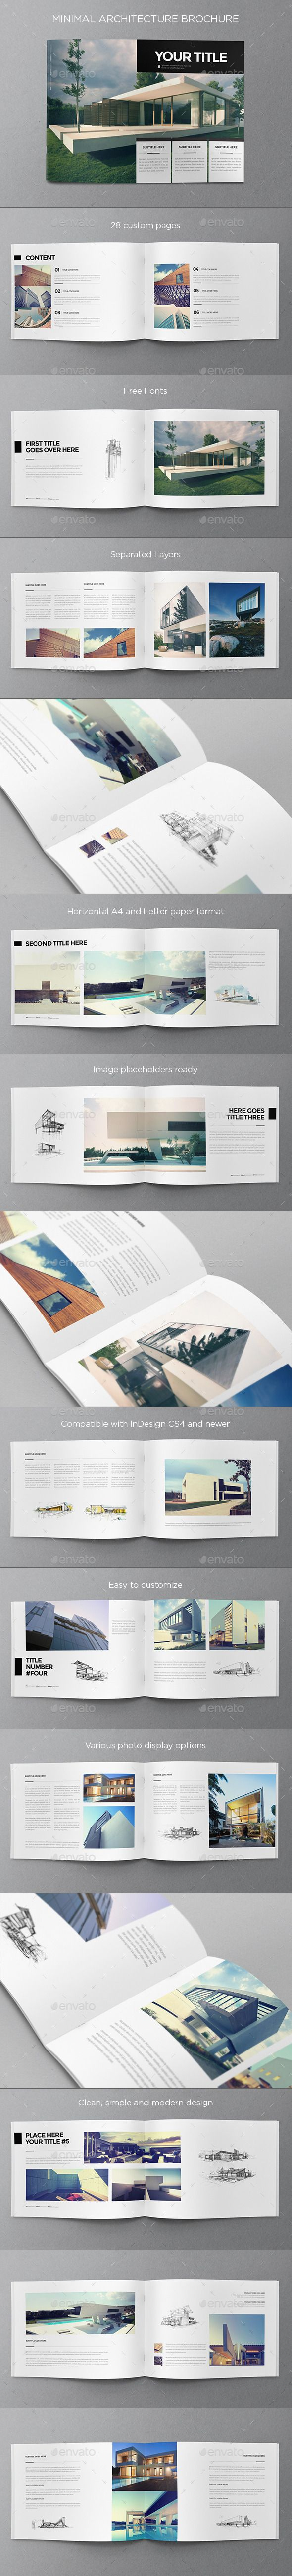 Minimal Architecture Brochure Template #design Download: http://graphicriver.net/item/minimal-architecture-brochure/9936143?ref=ksioks